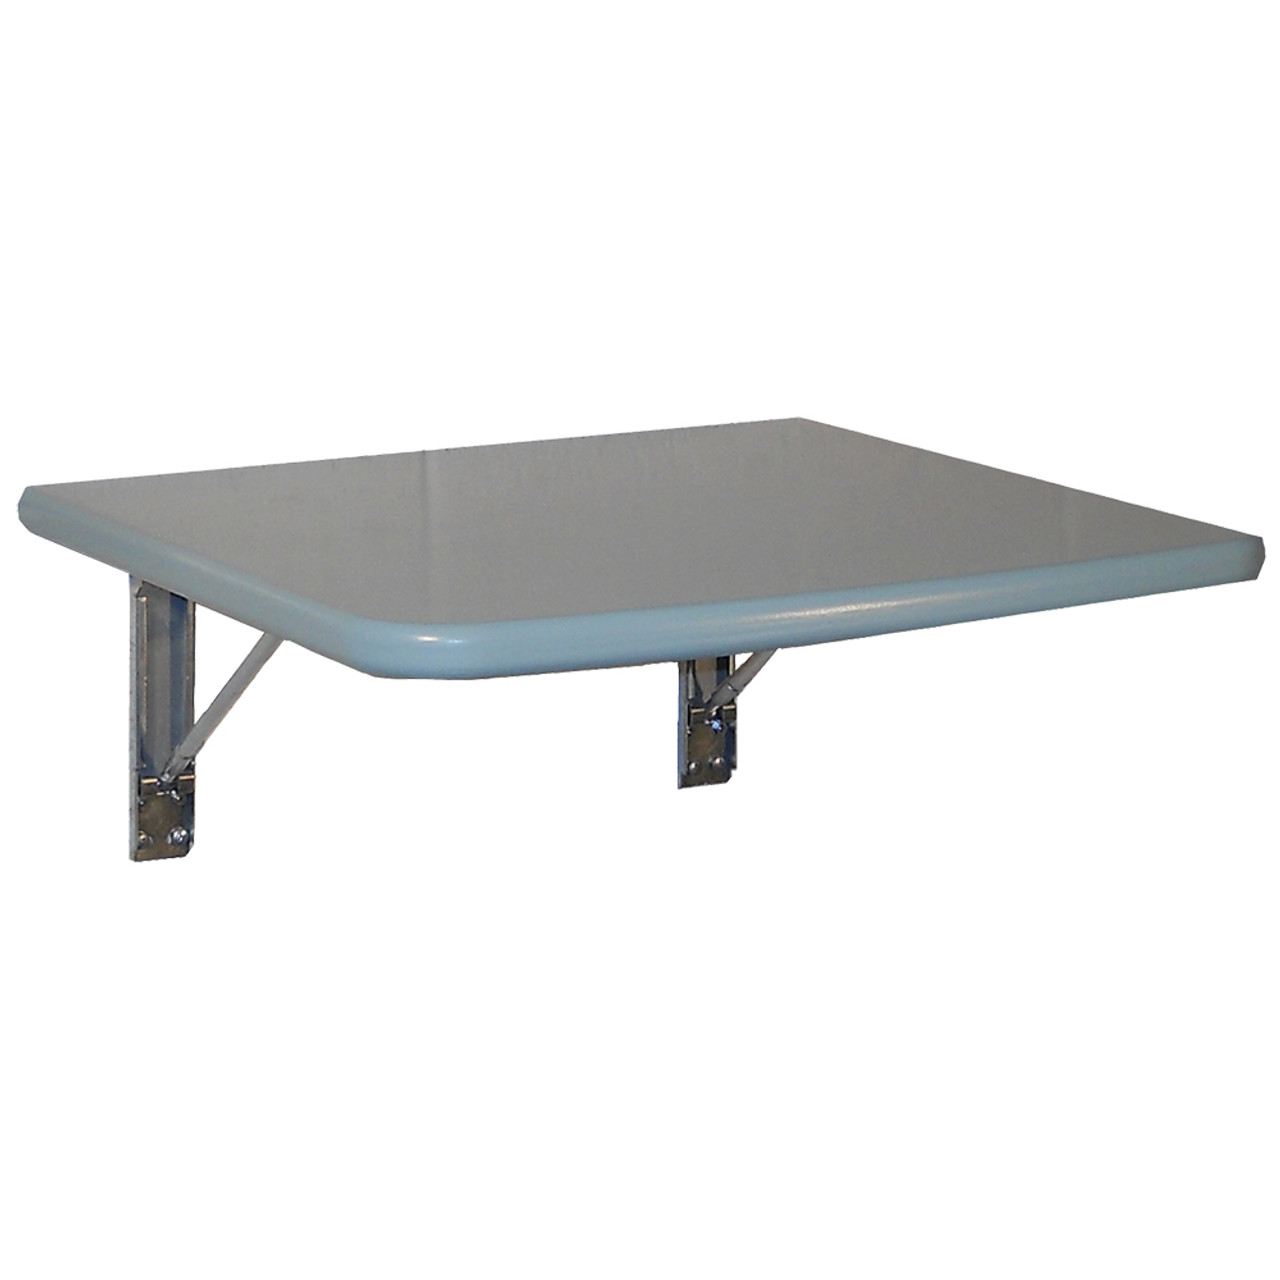 Blue painted wall folding table with a pair of our FDP brackets attached